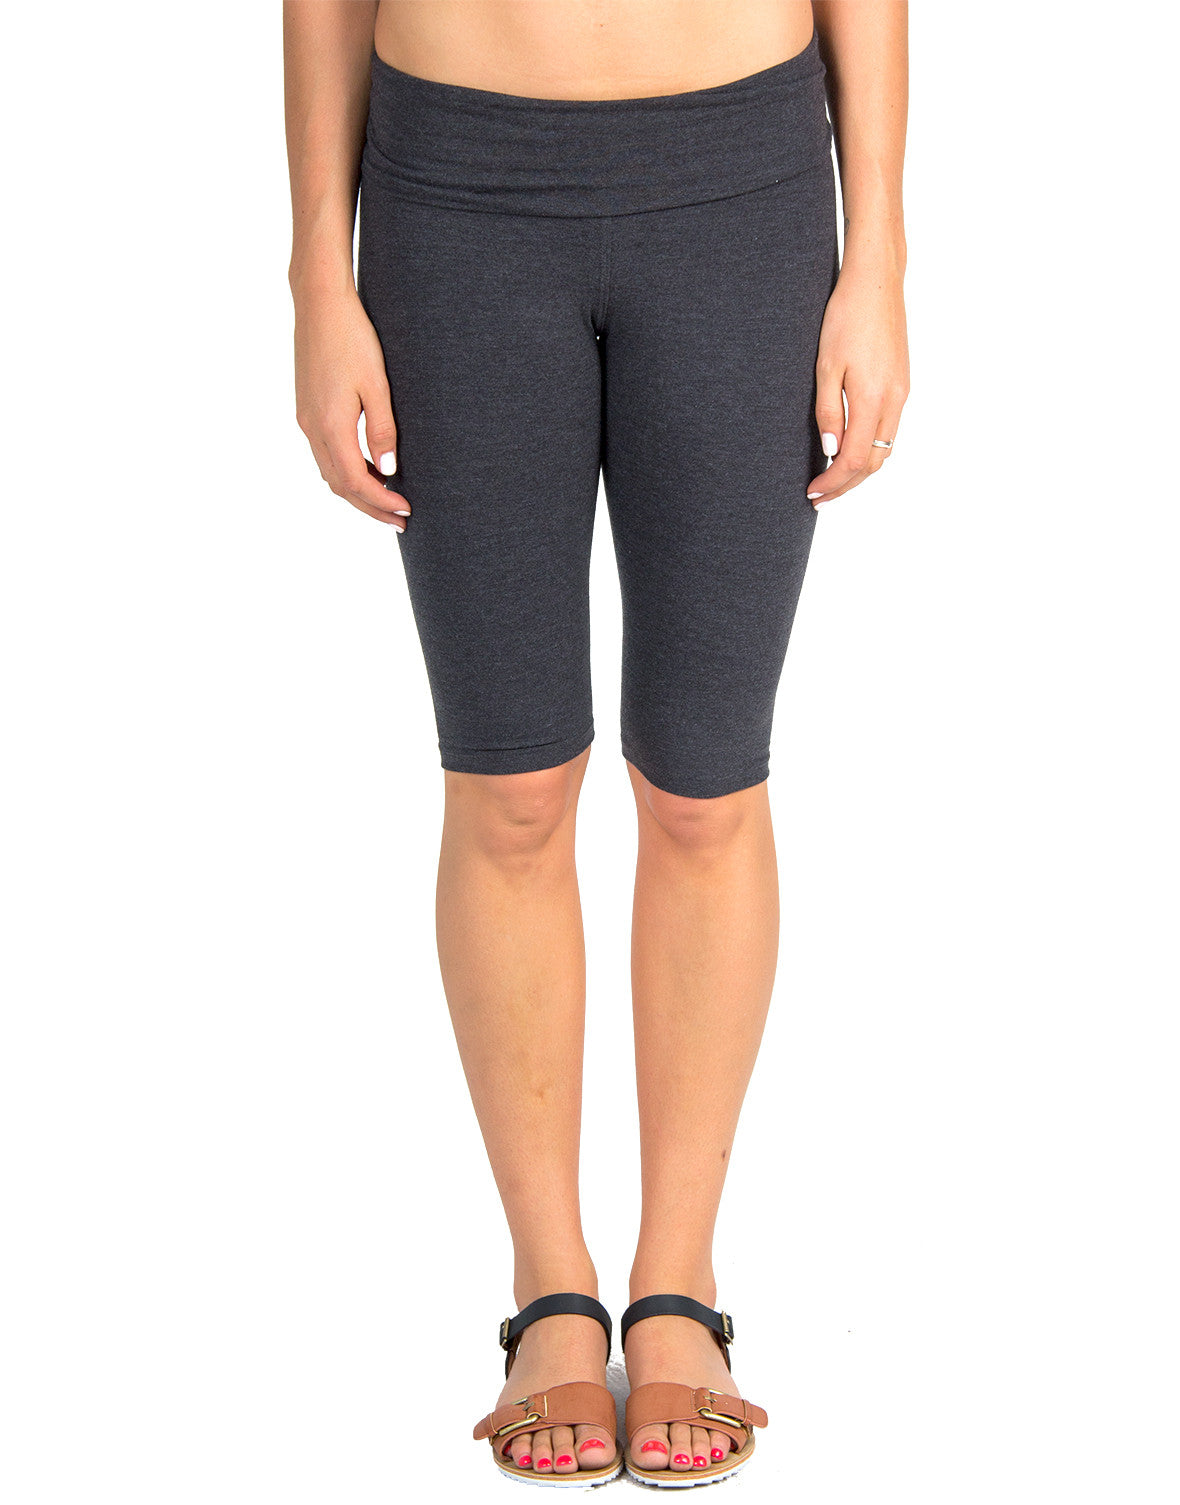 Above The Knee Yoga Pants